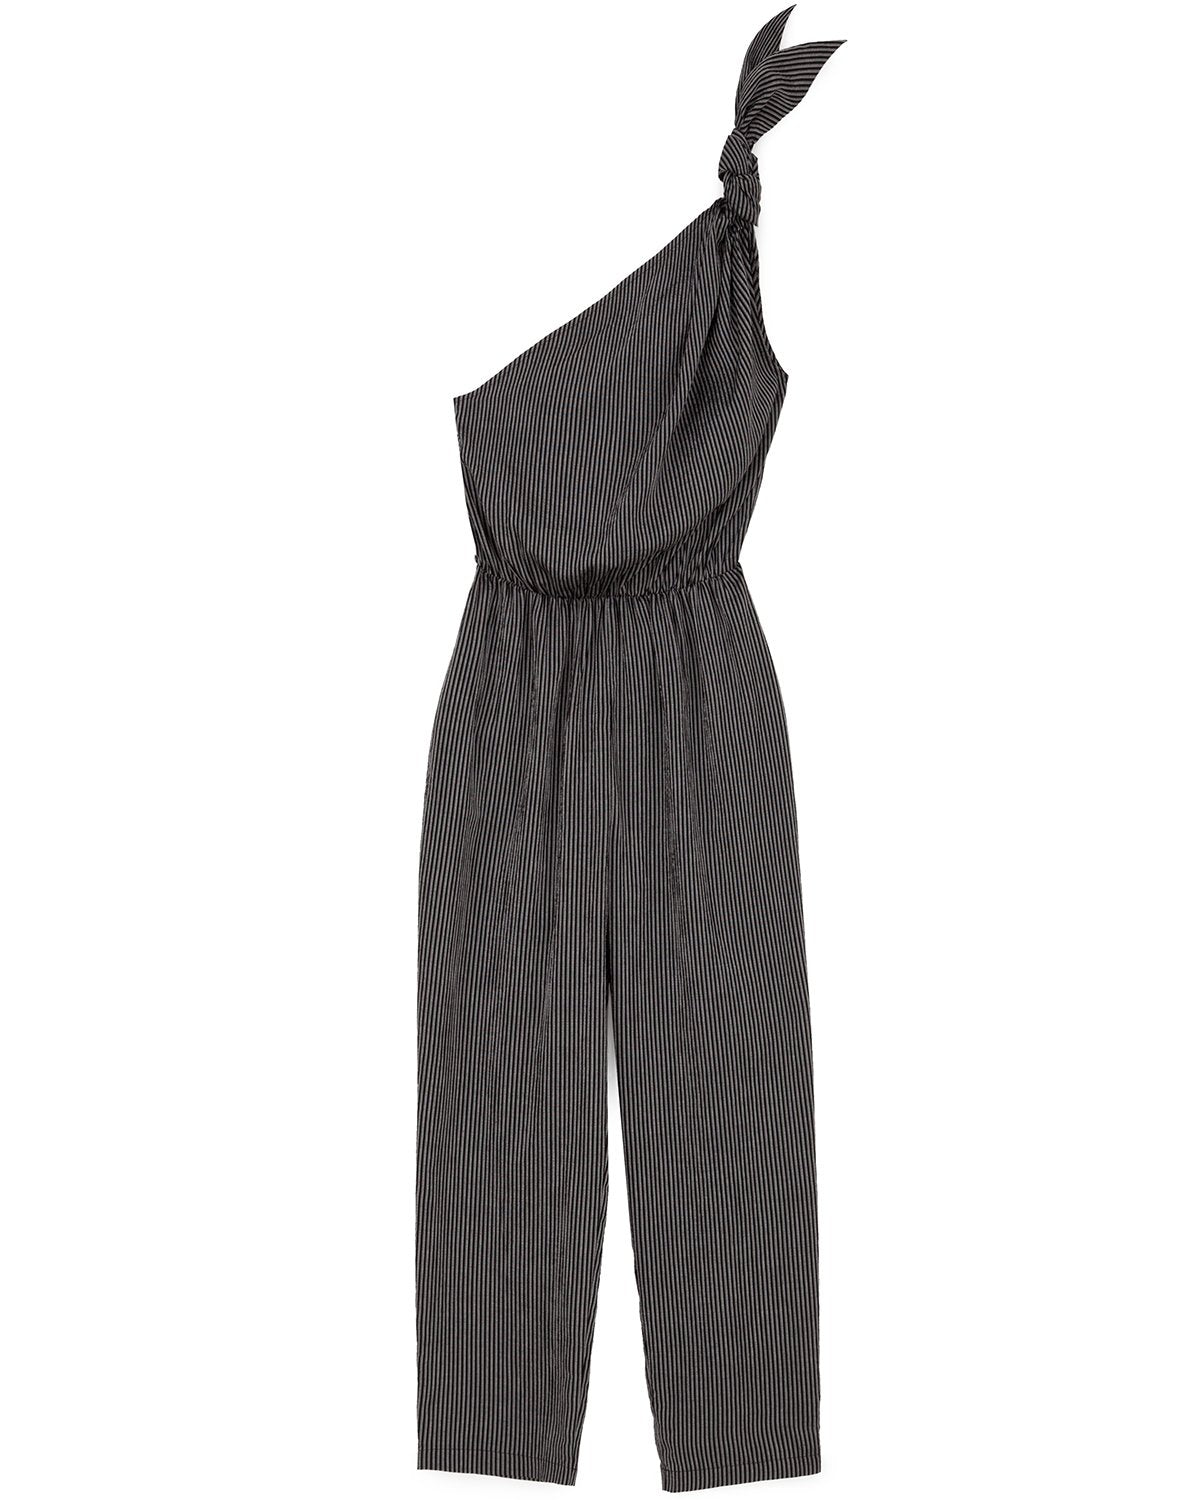 NYLA - Asymmetric one-piece jumpsuit - Black stripe